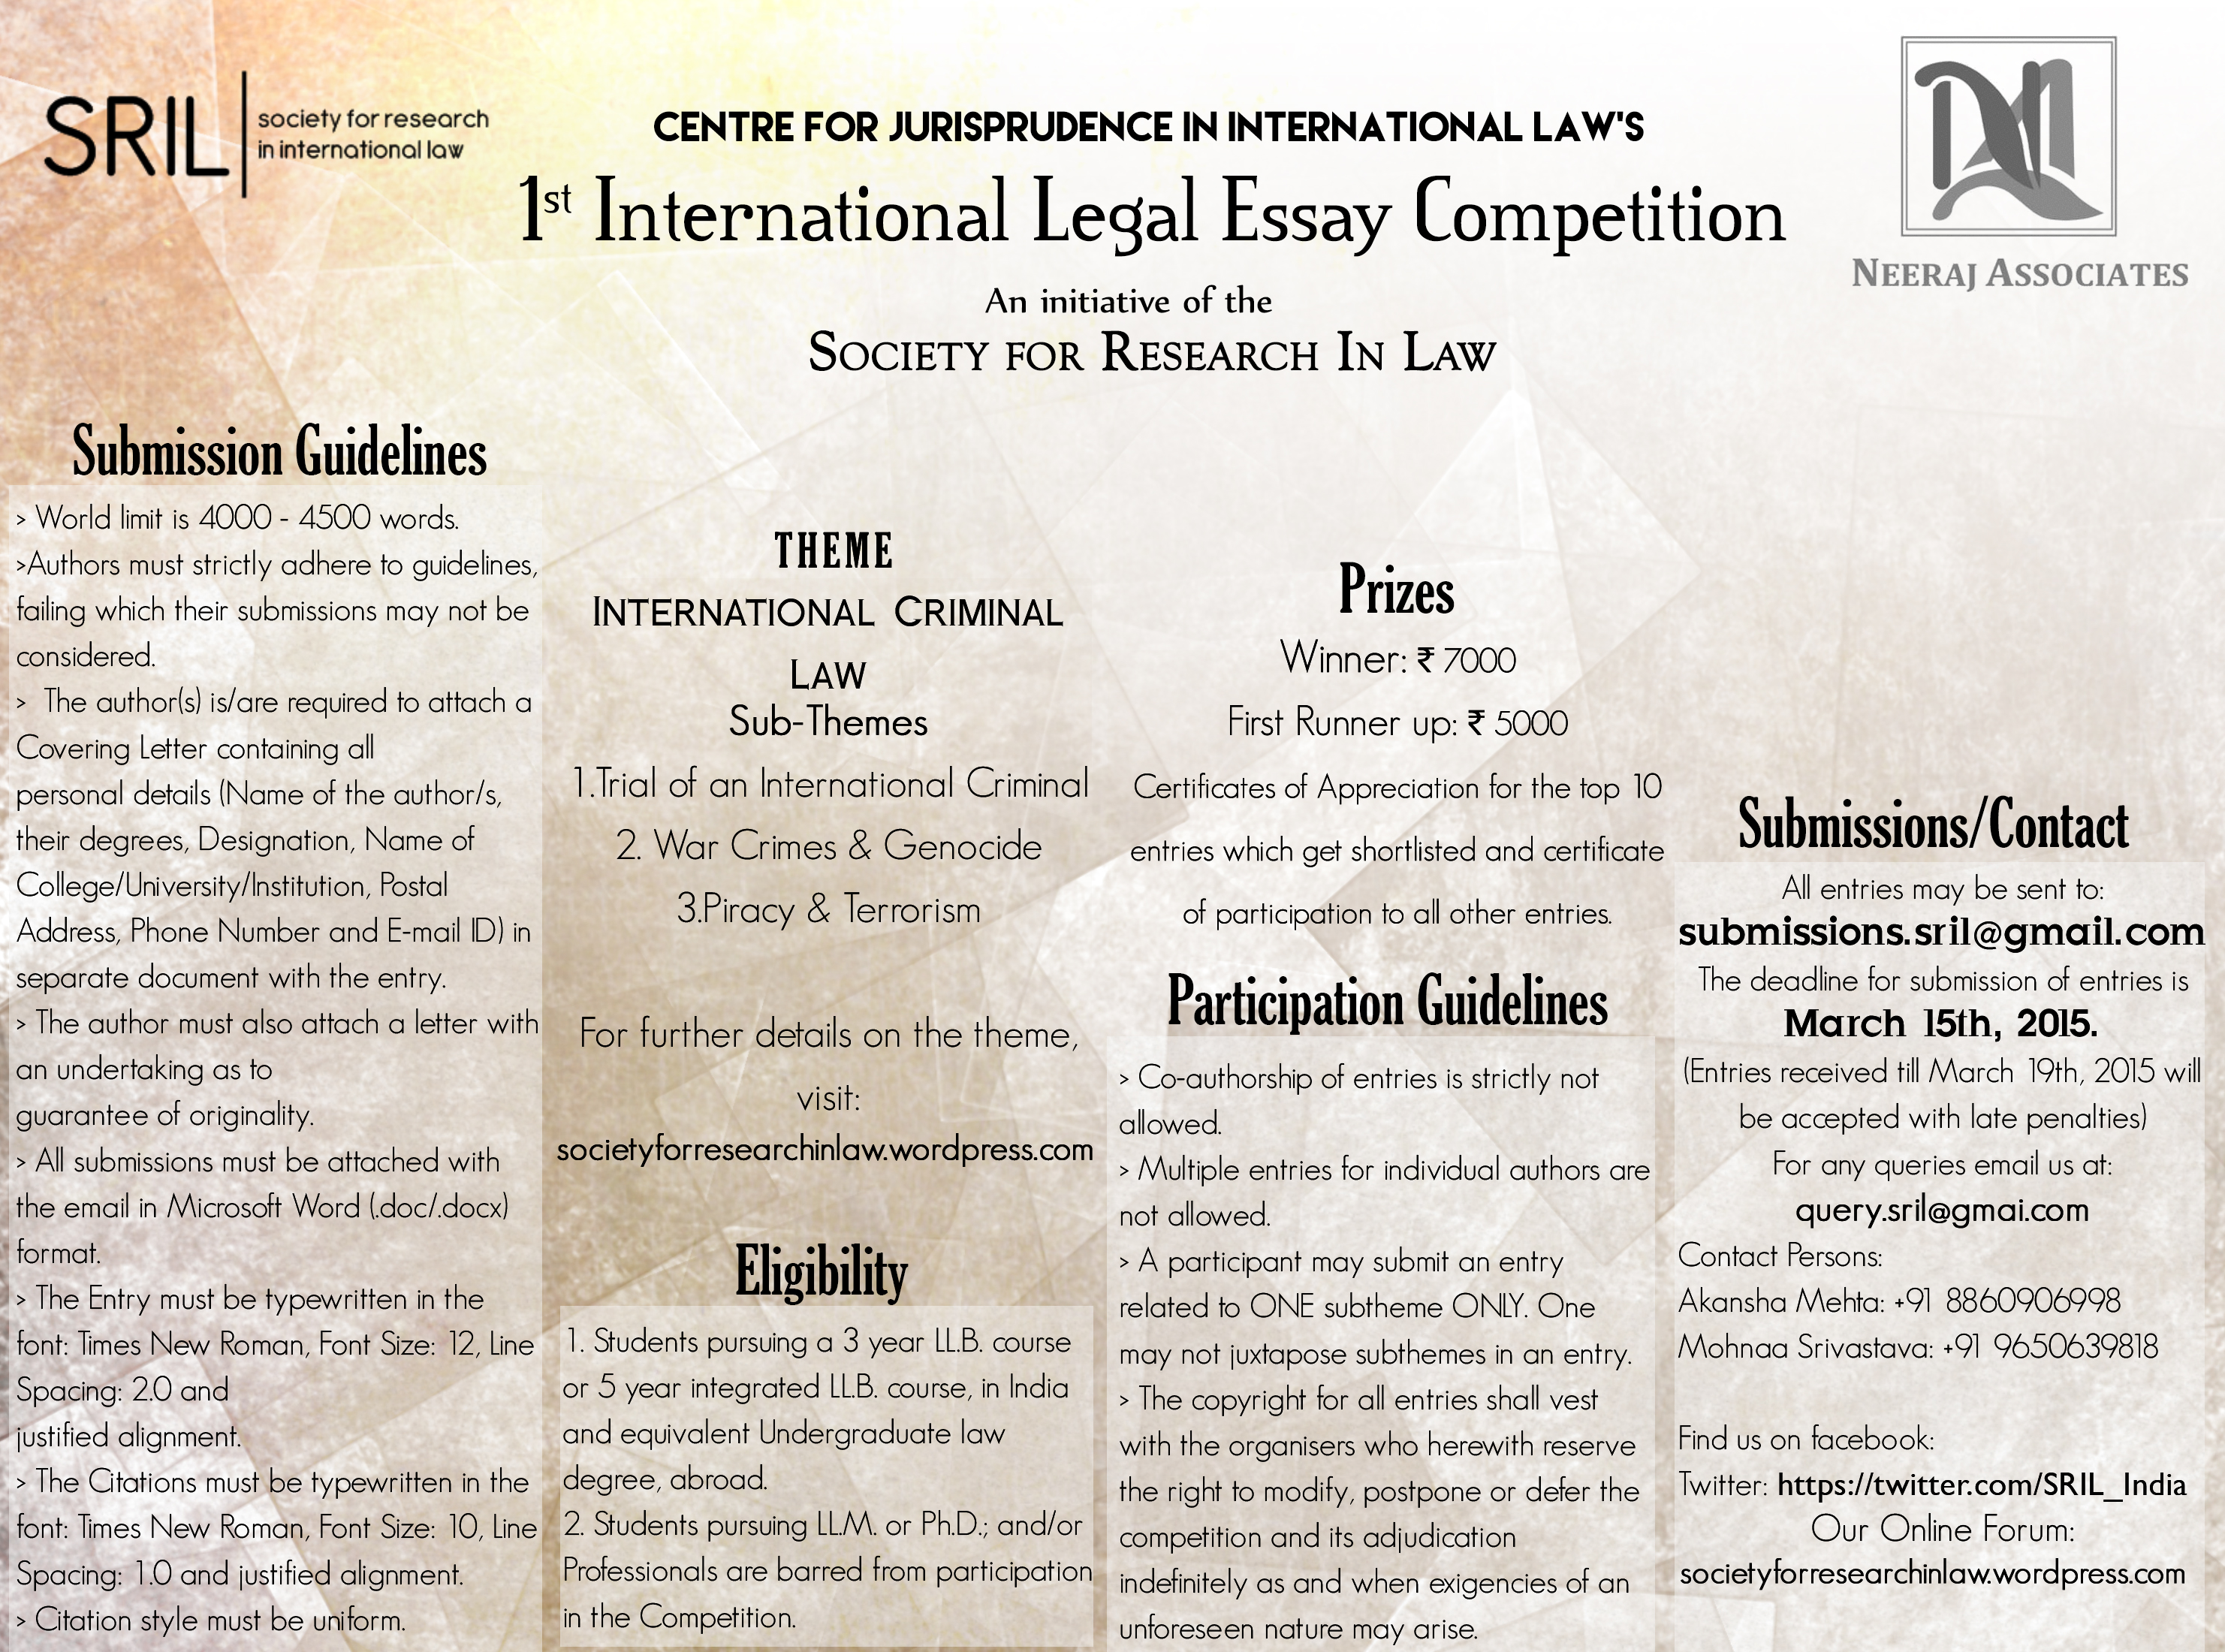 essay on international criminal law 2015 society for research in law essay on international criminal law 2015